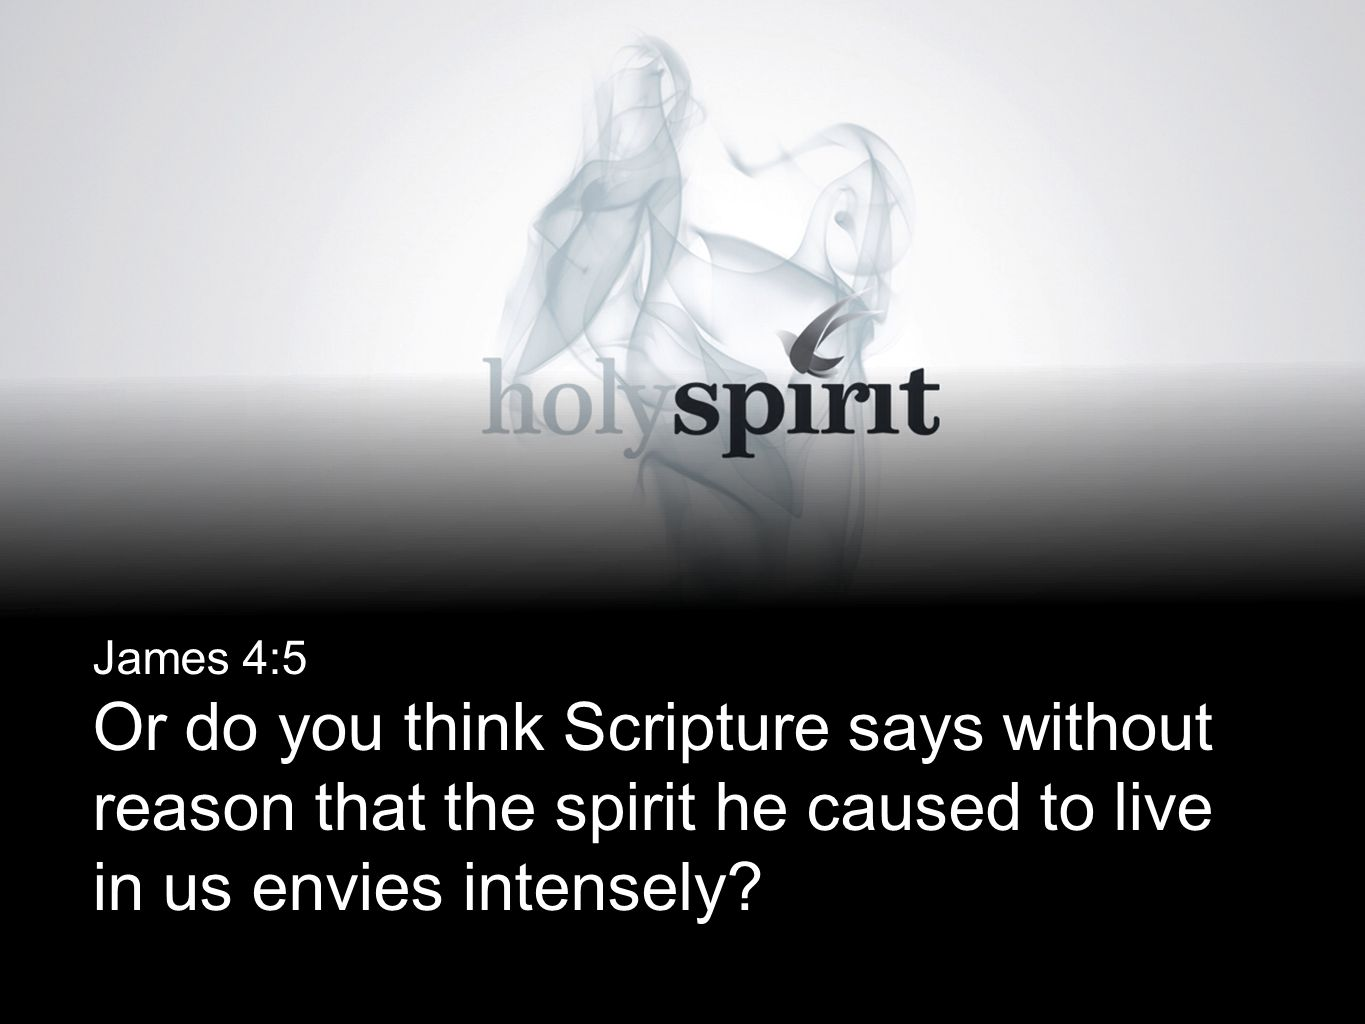 James 4:5 Or do you think Scripture says without reason that the spirit he caused to live in us envies intensely